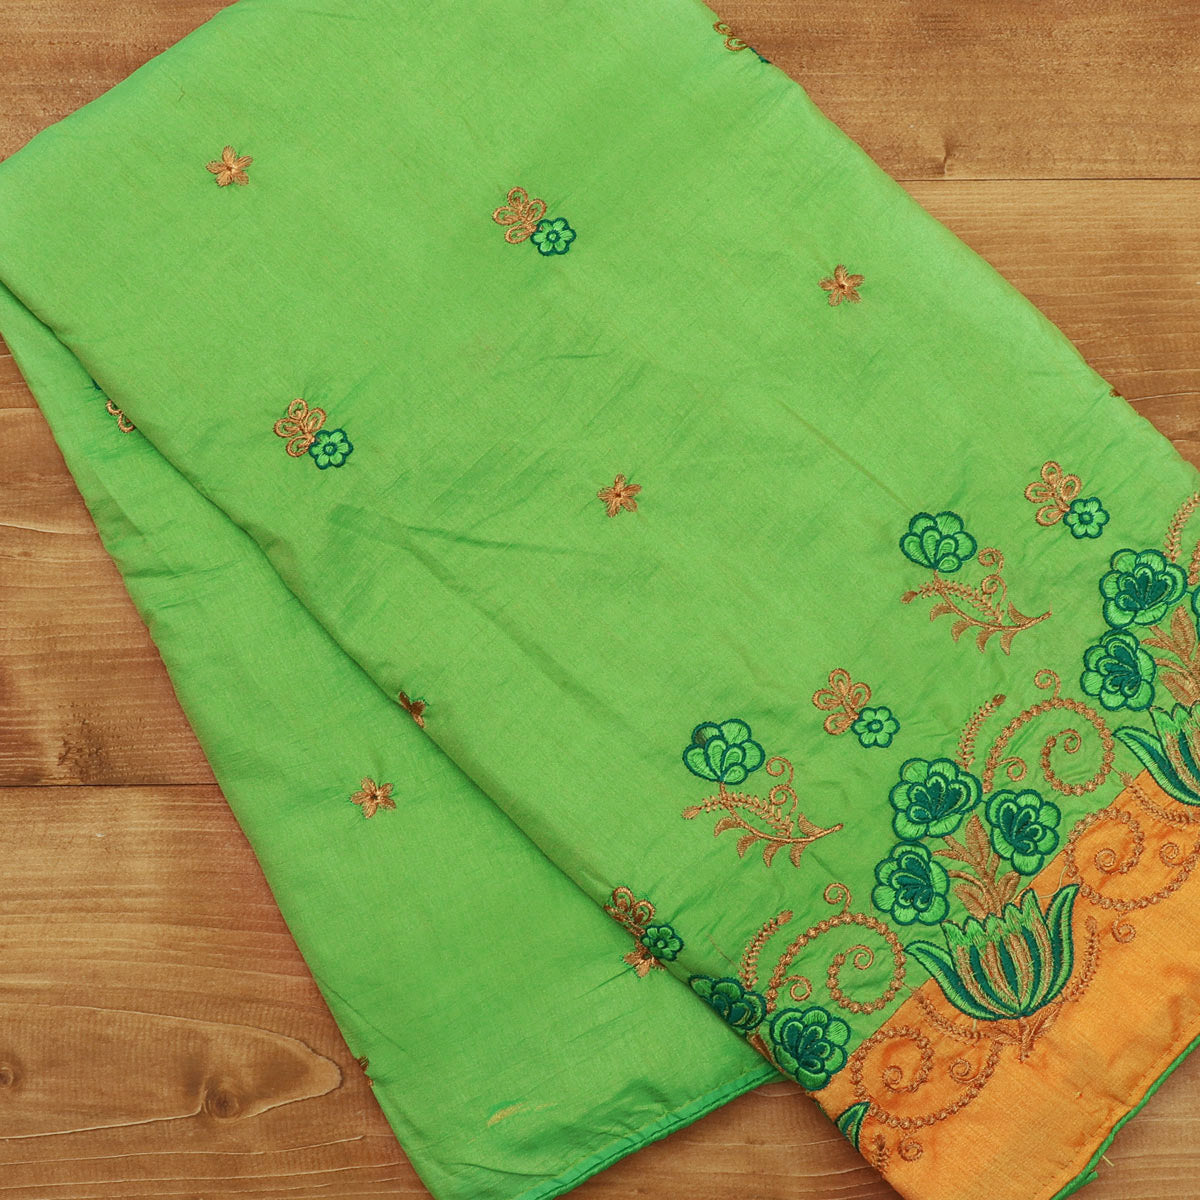 Sana Silk Saree Green with gold Embroidery and Yellow with Flower Embroidery